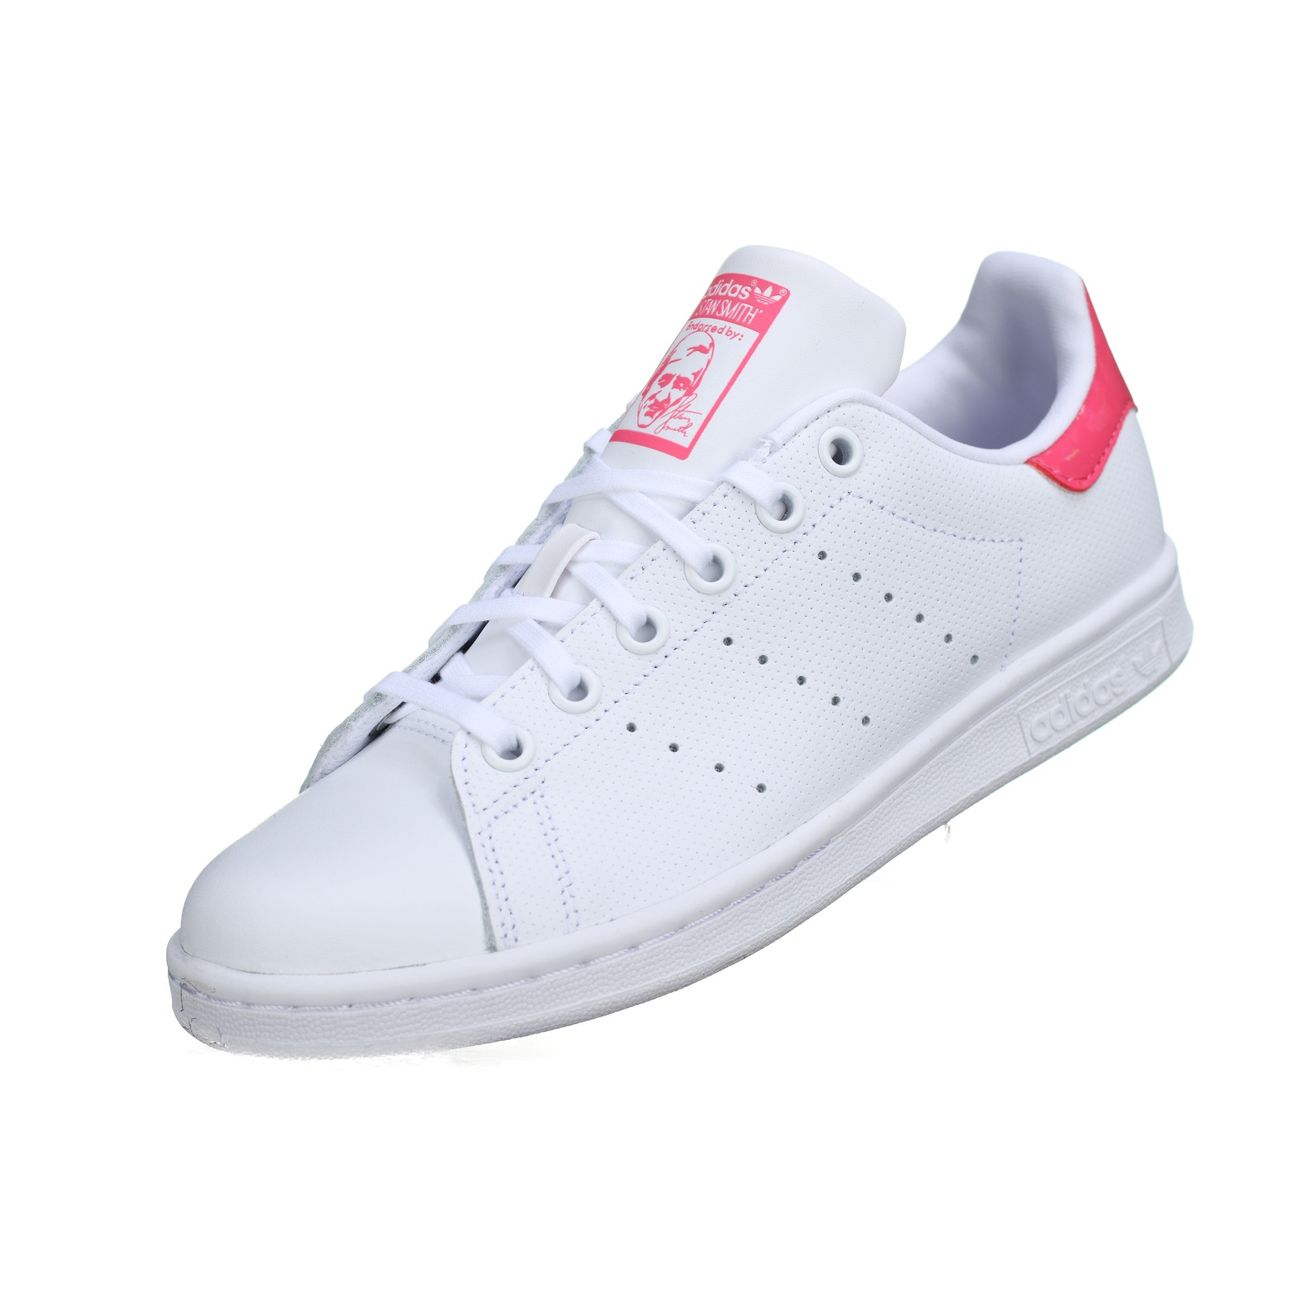 meet 34be7 04b94 Mode- Lifestyle homme ADIDAS Basket Adidas Stan Smith J Db1207 Blanc   Rose  ...